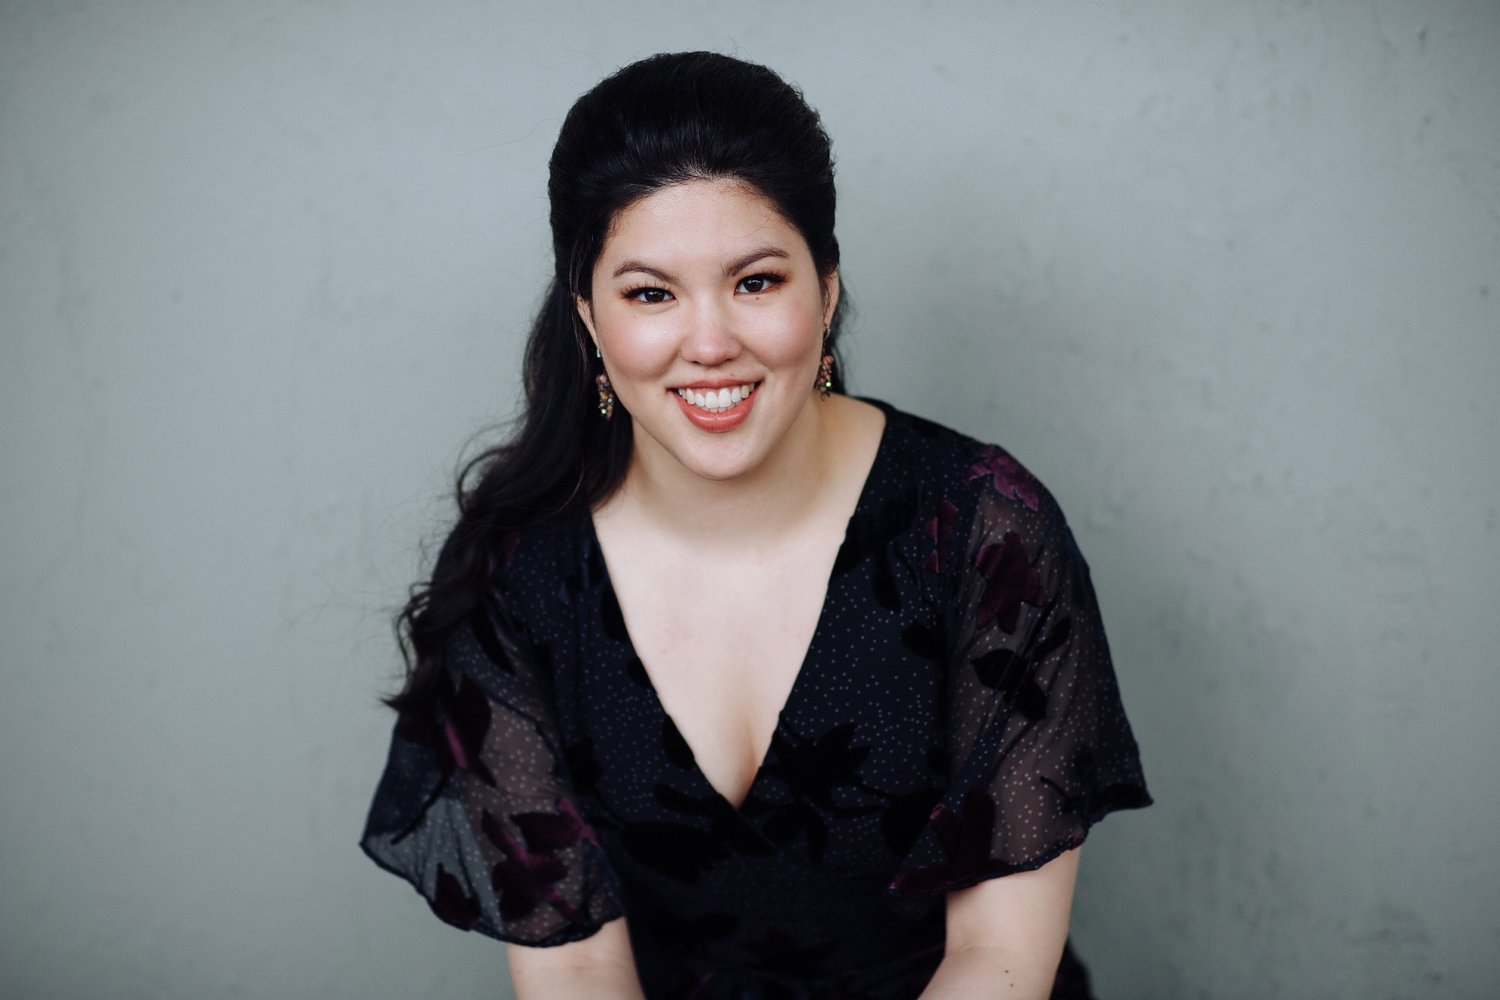 Violinist Rachell Ellen Wong, winner of the first annual Lillian and Maurice Barbash J.S. Bach Competition, will perform J.S. Bach's Sonata No. 3 in C major, BWV 1005.